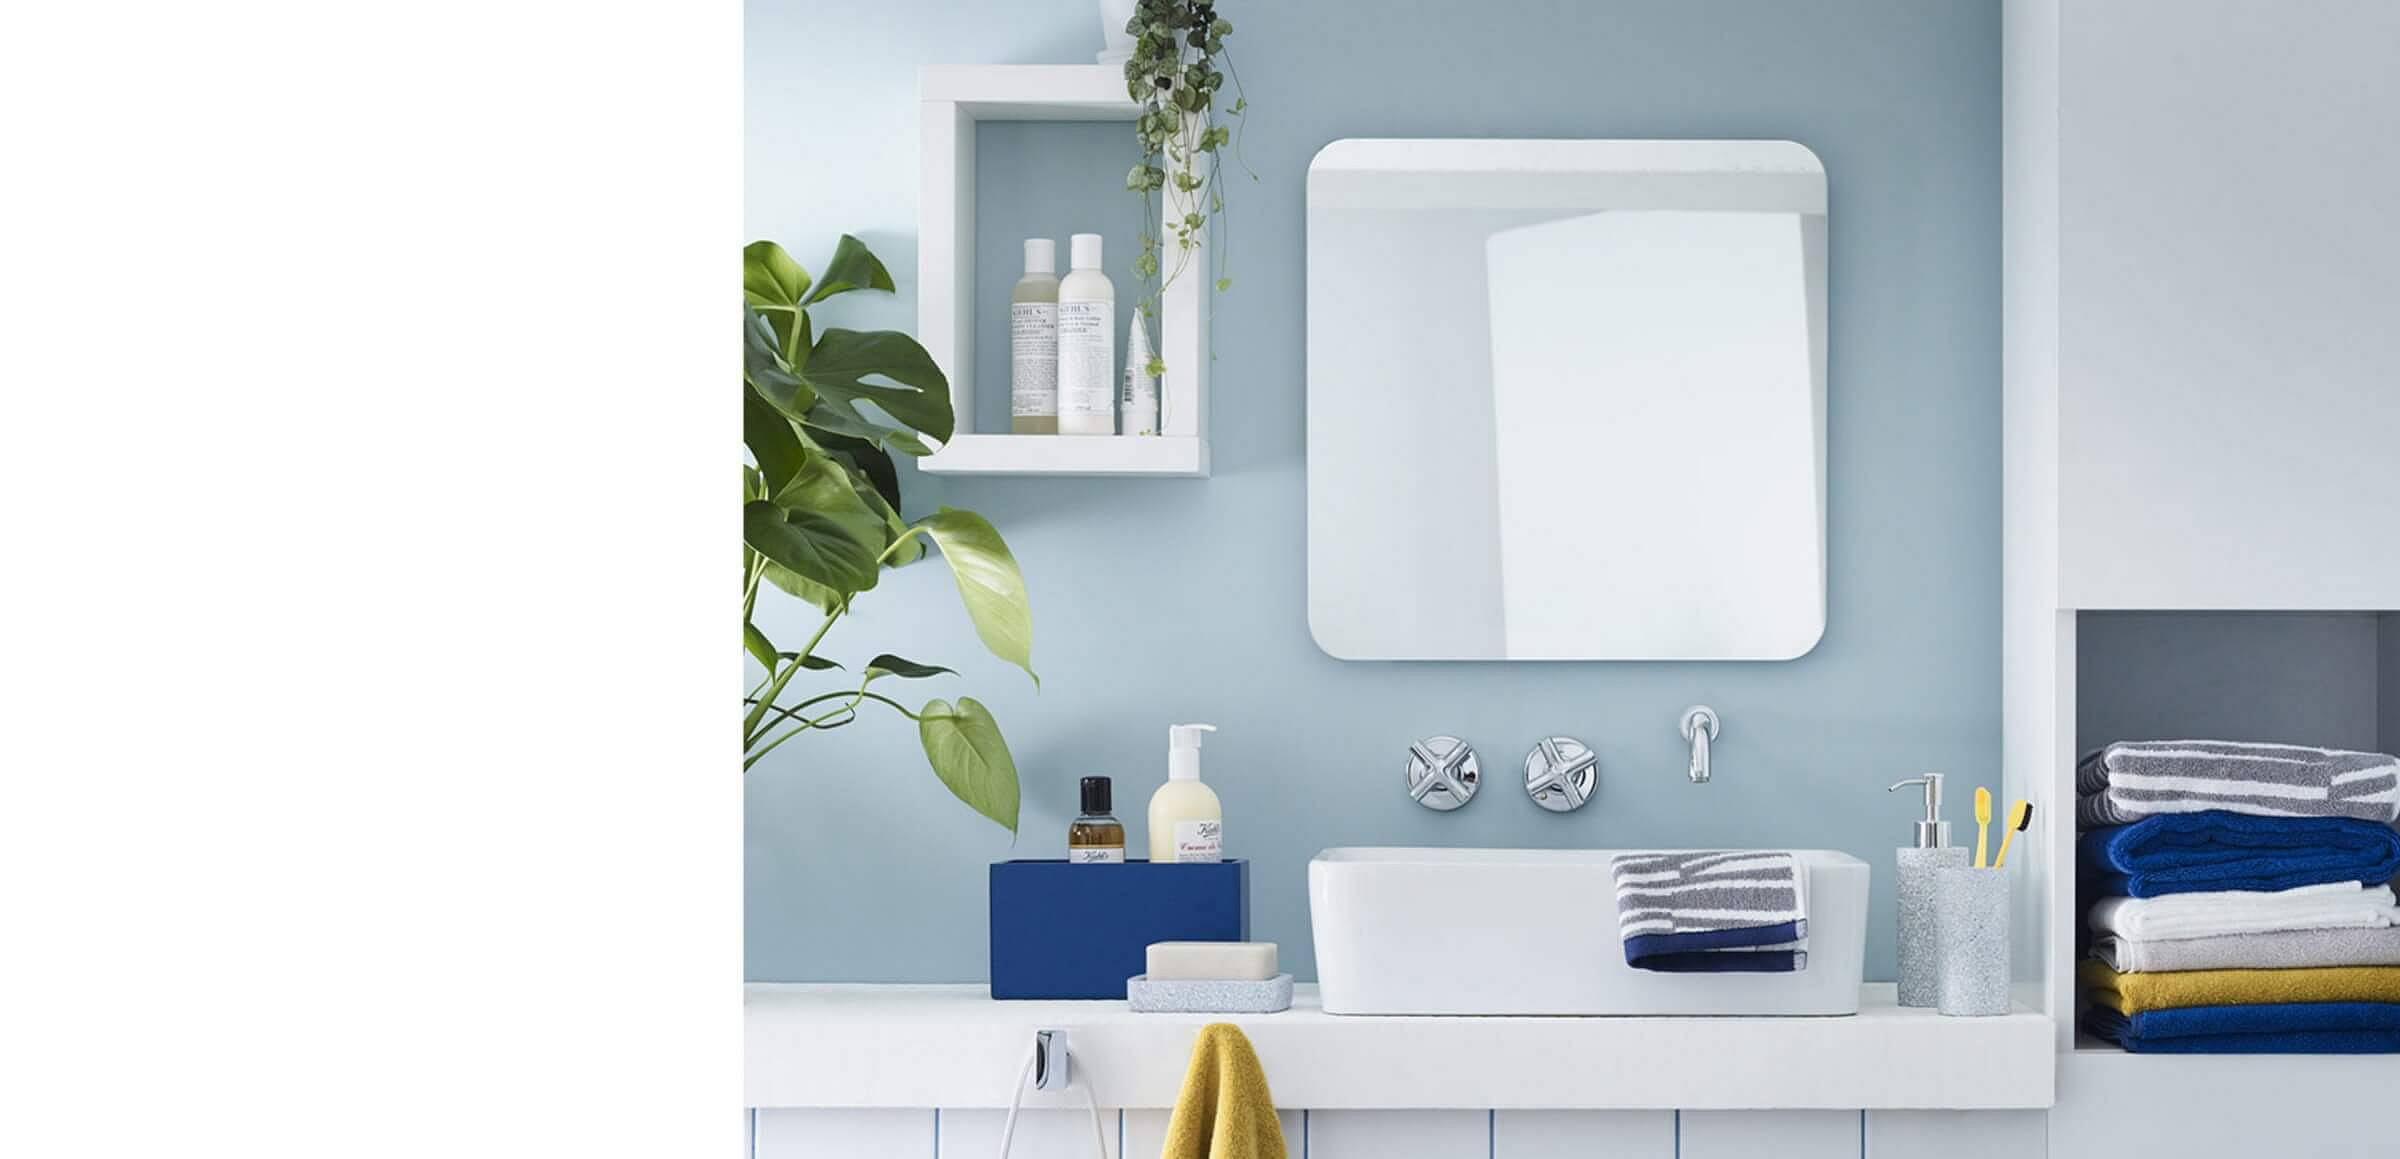 House by John Lewis bathroom accessories